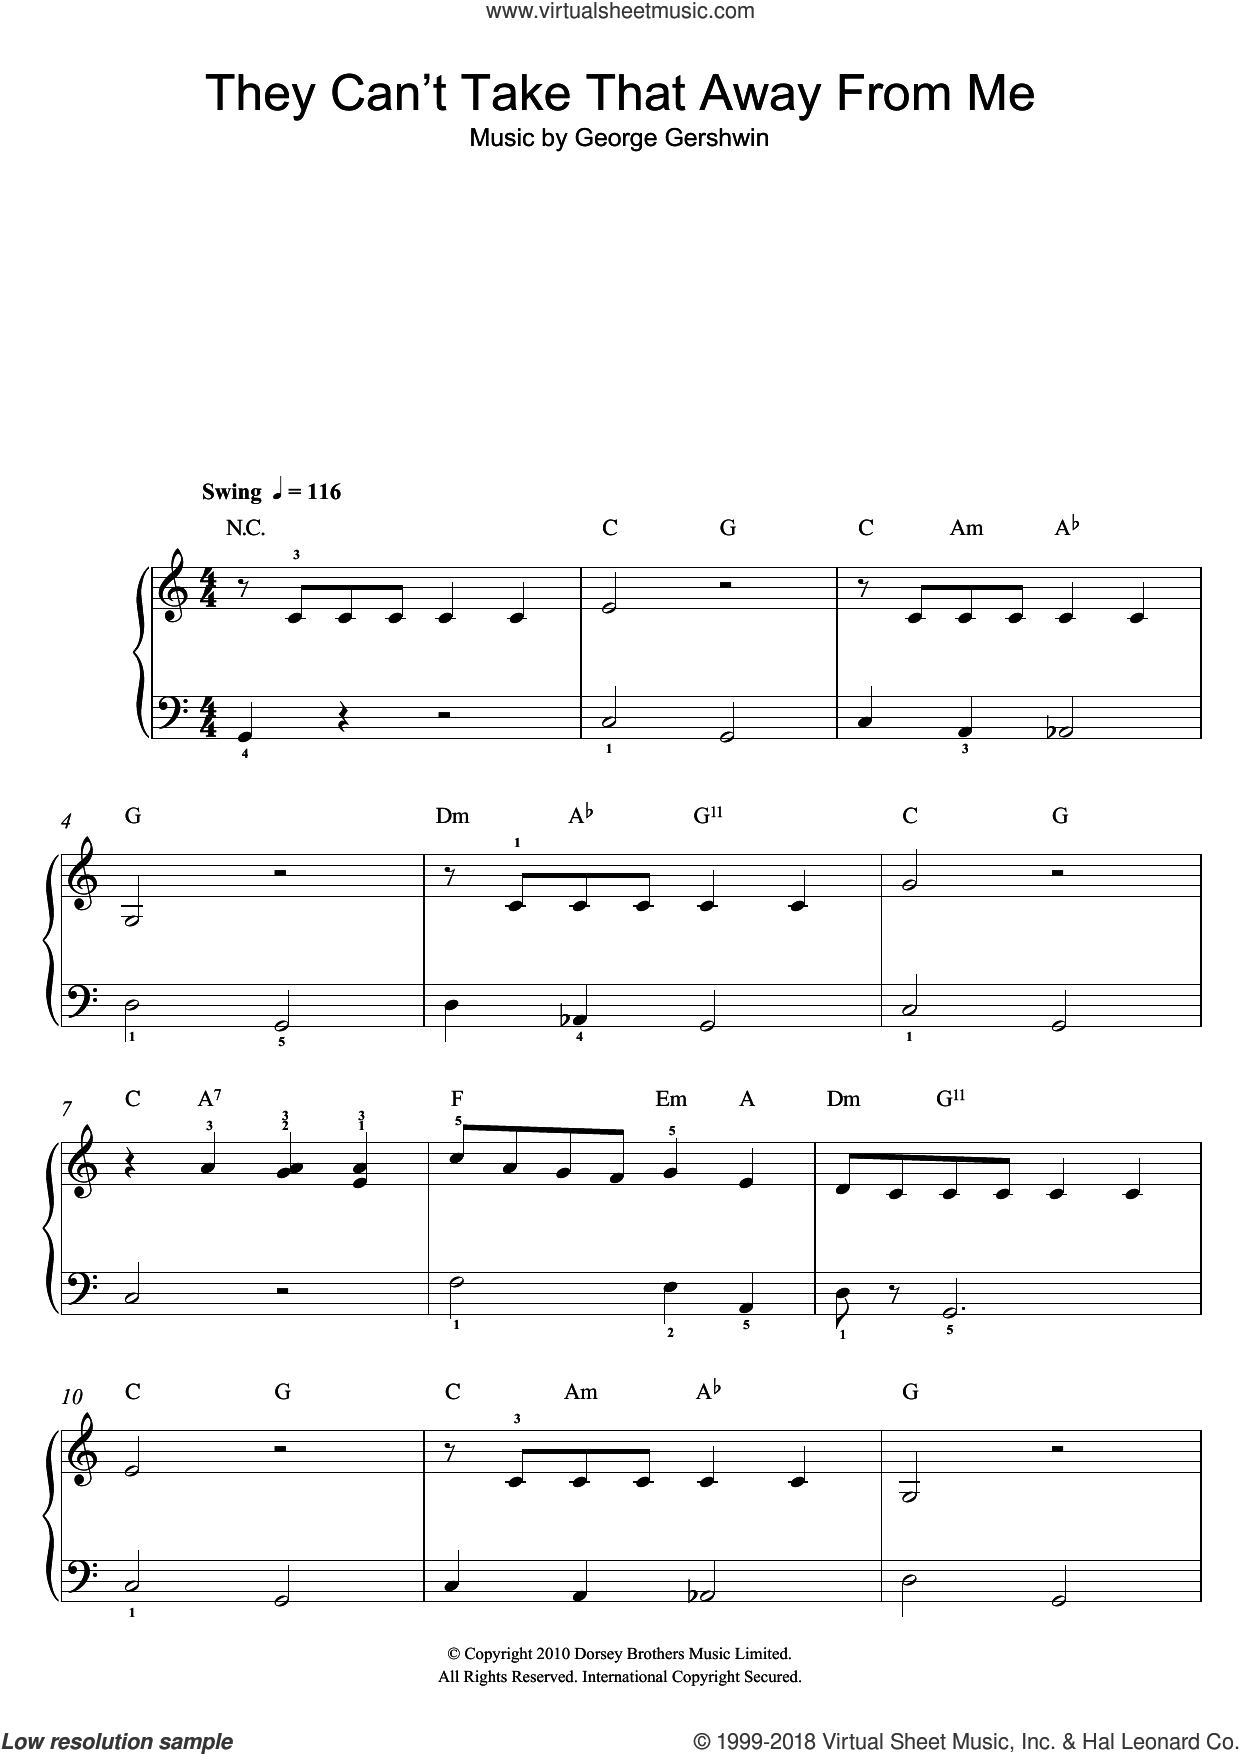 They Can't Take That Away From Me sheet music for piano solo by George Gershwin, easy skill level